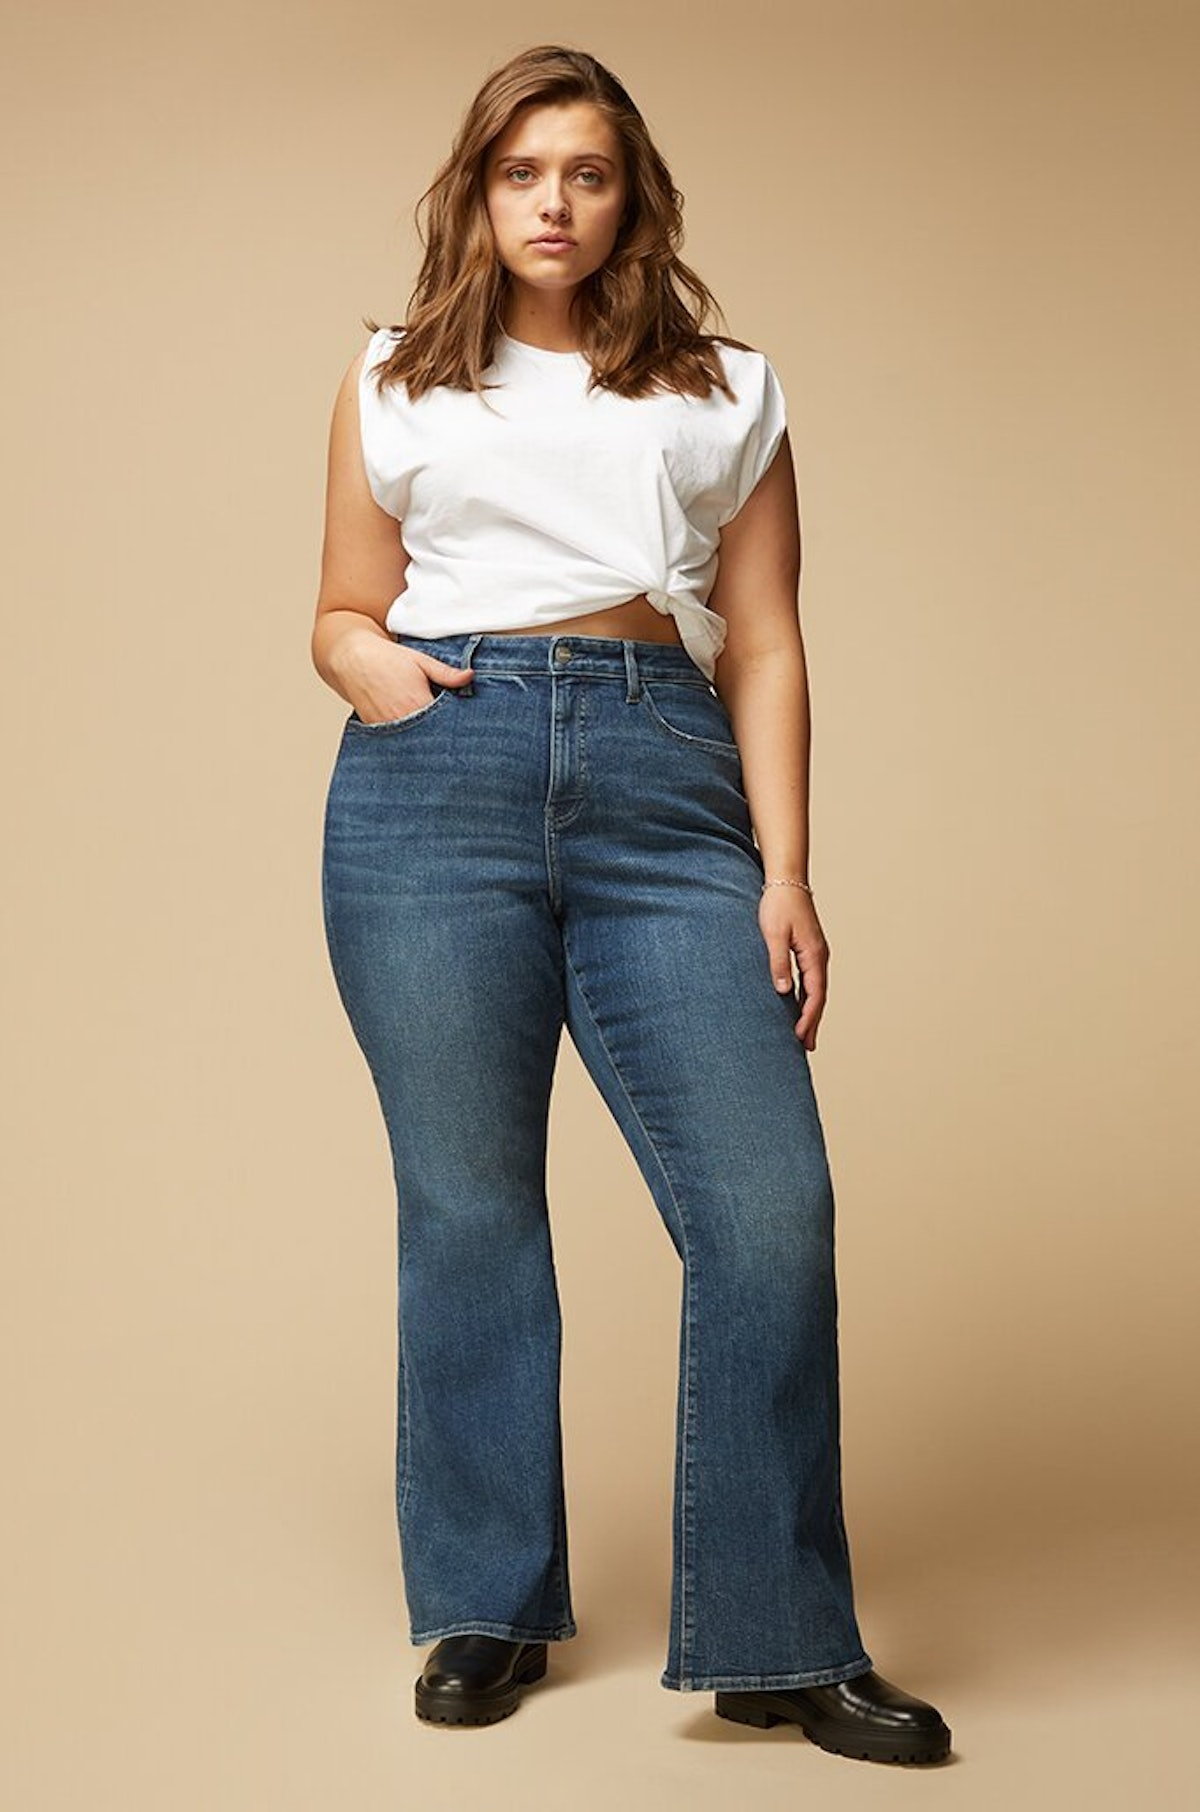 High Rise Flare 29'' Jeans in Feel Good from Warp + Weft.